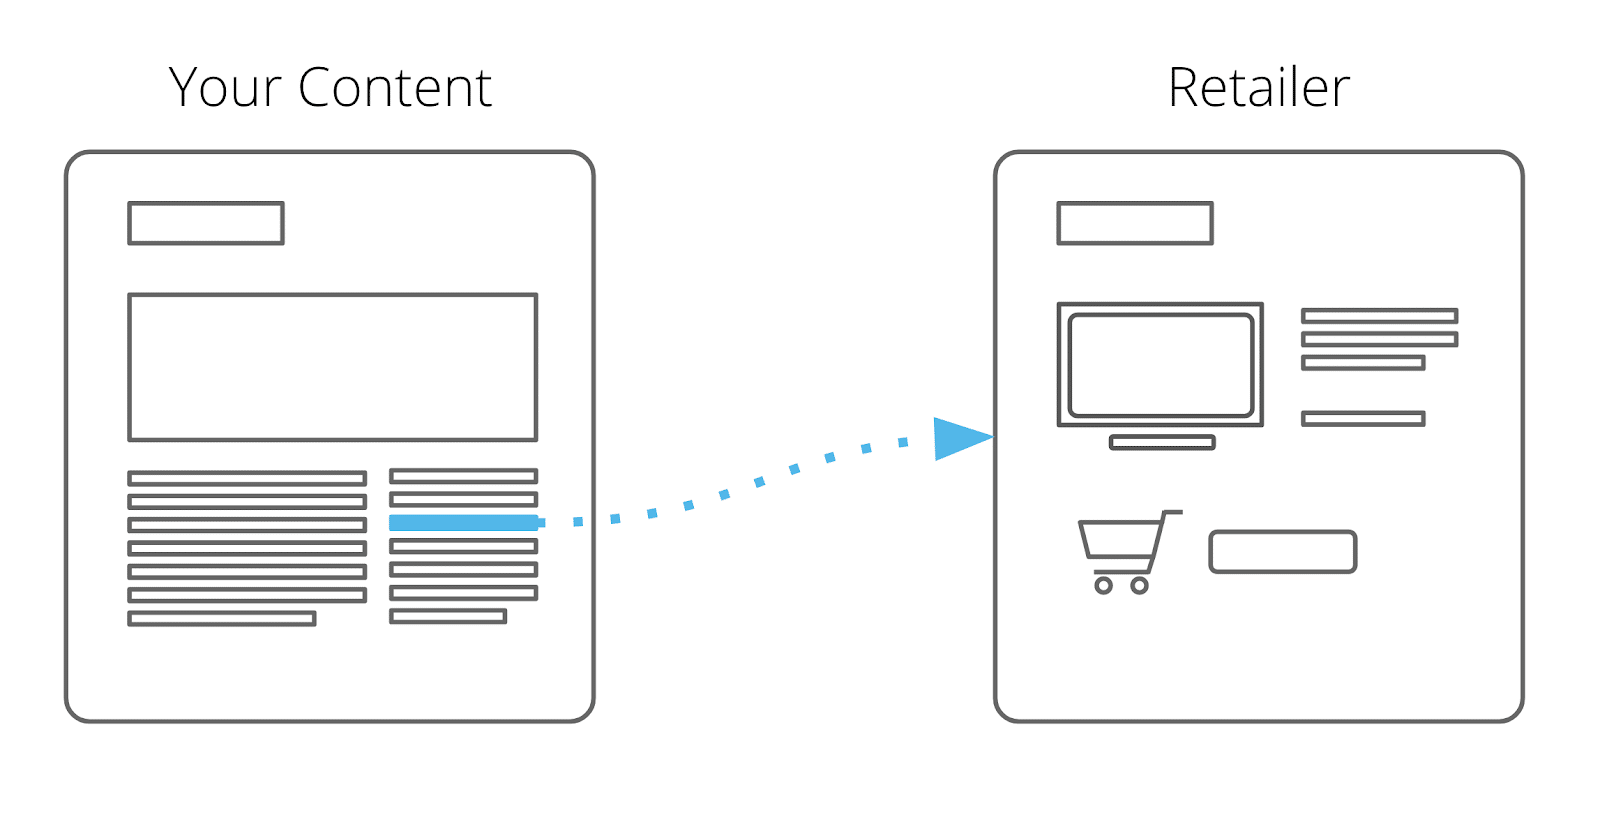 affiliate link followed to retailer site, A/B test